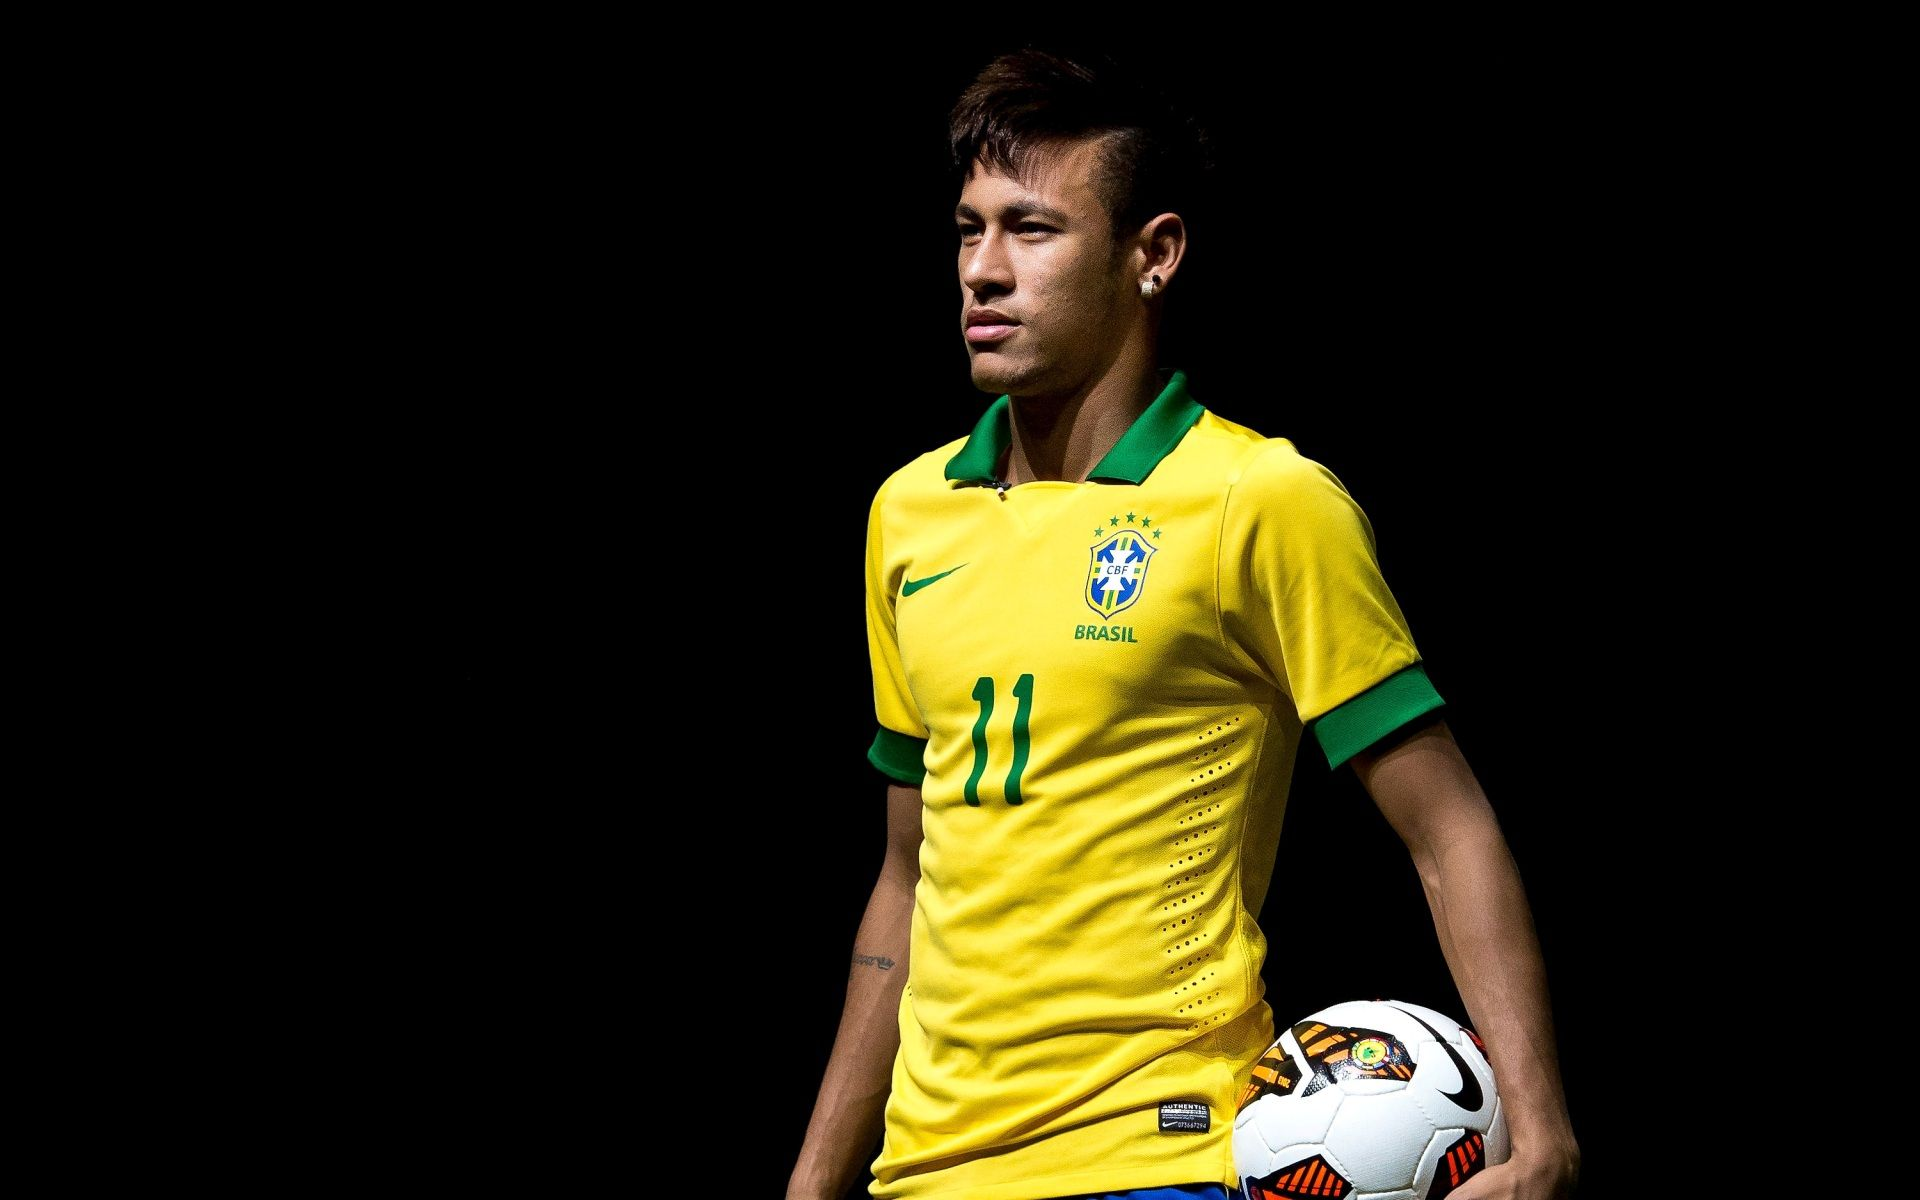 Brazilian Footballer Neymar hd wallpaper for desktop